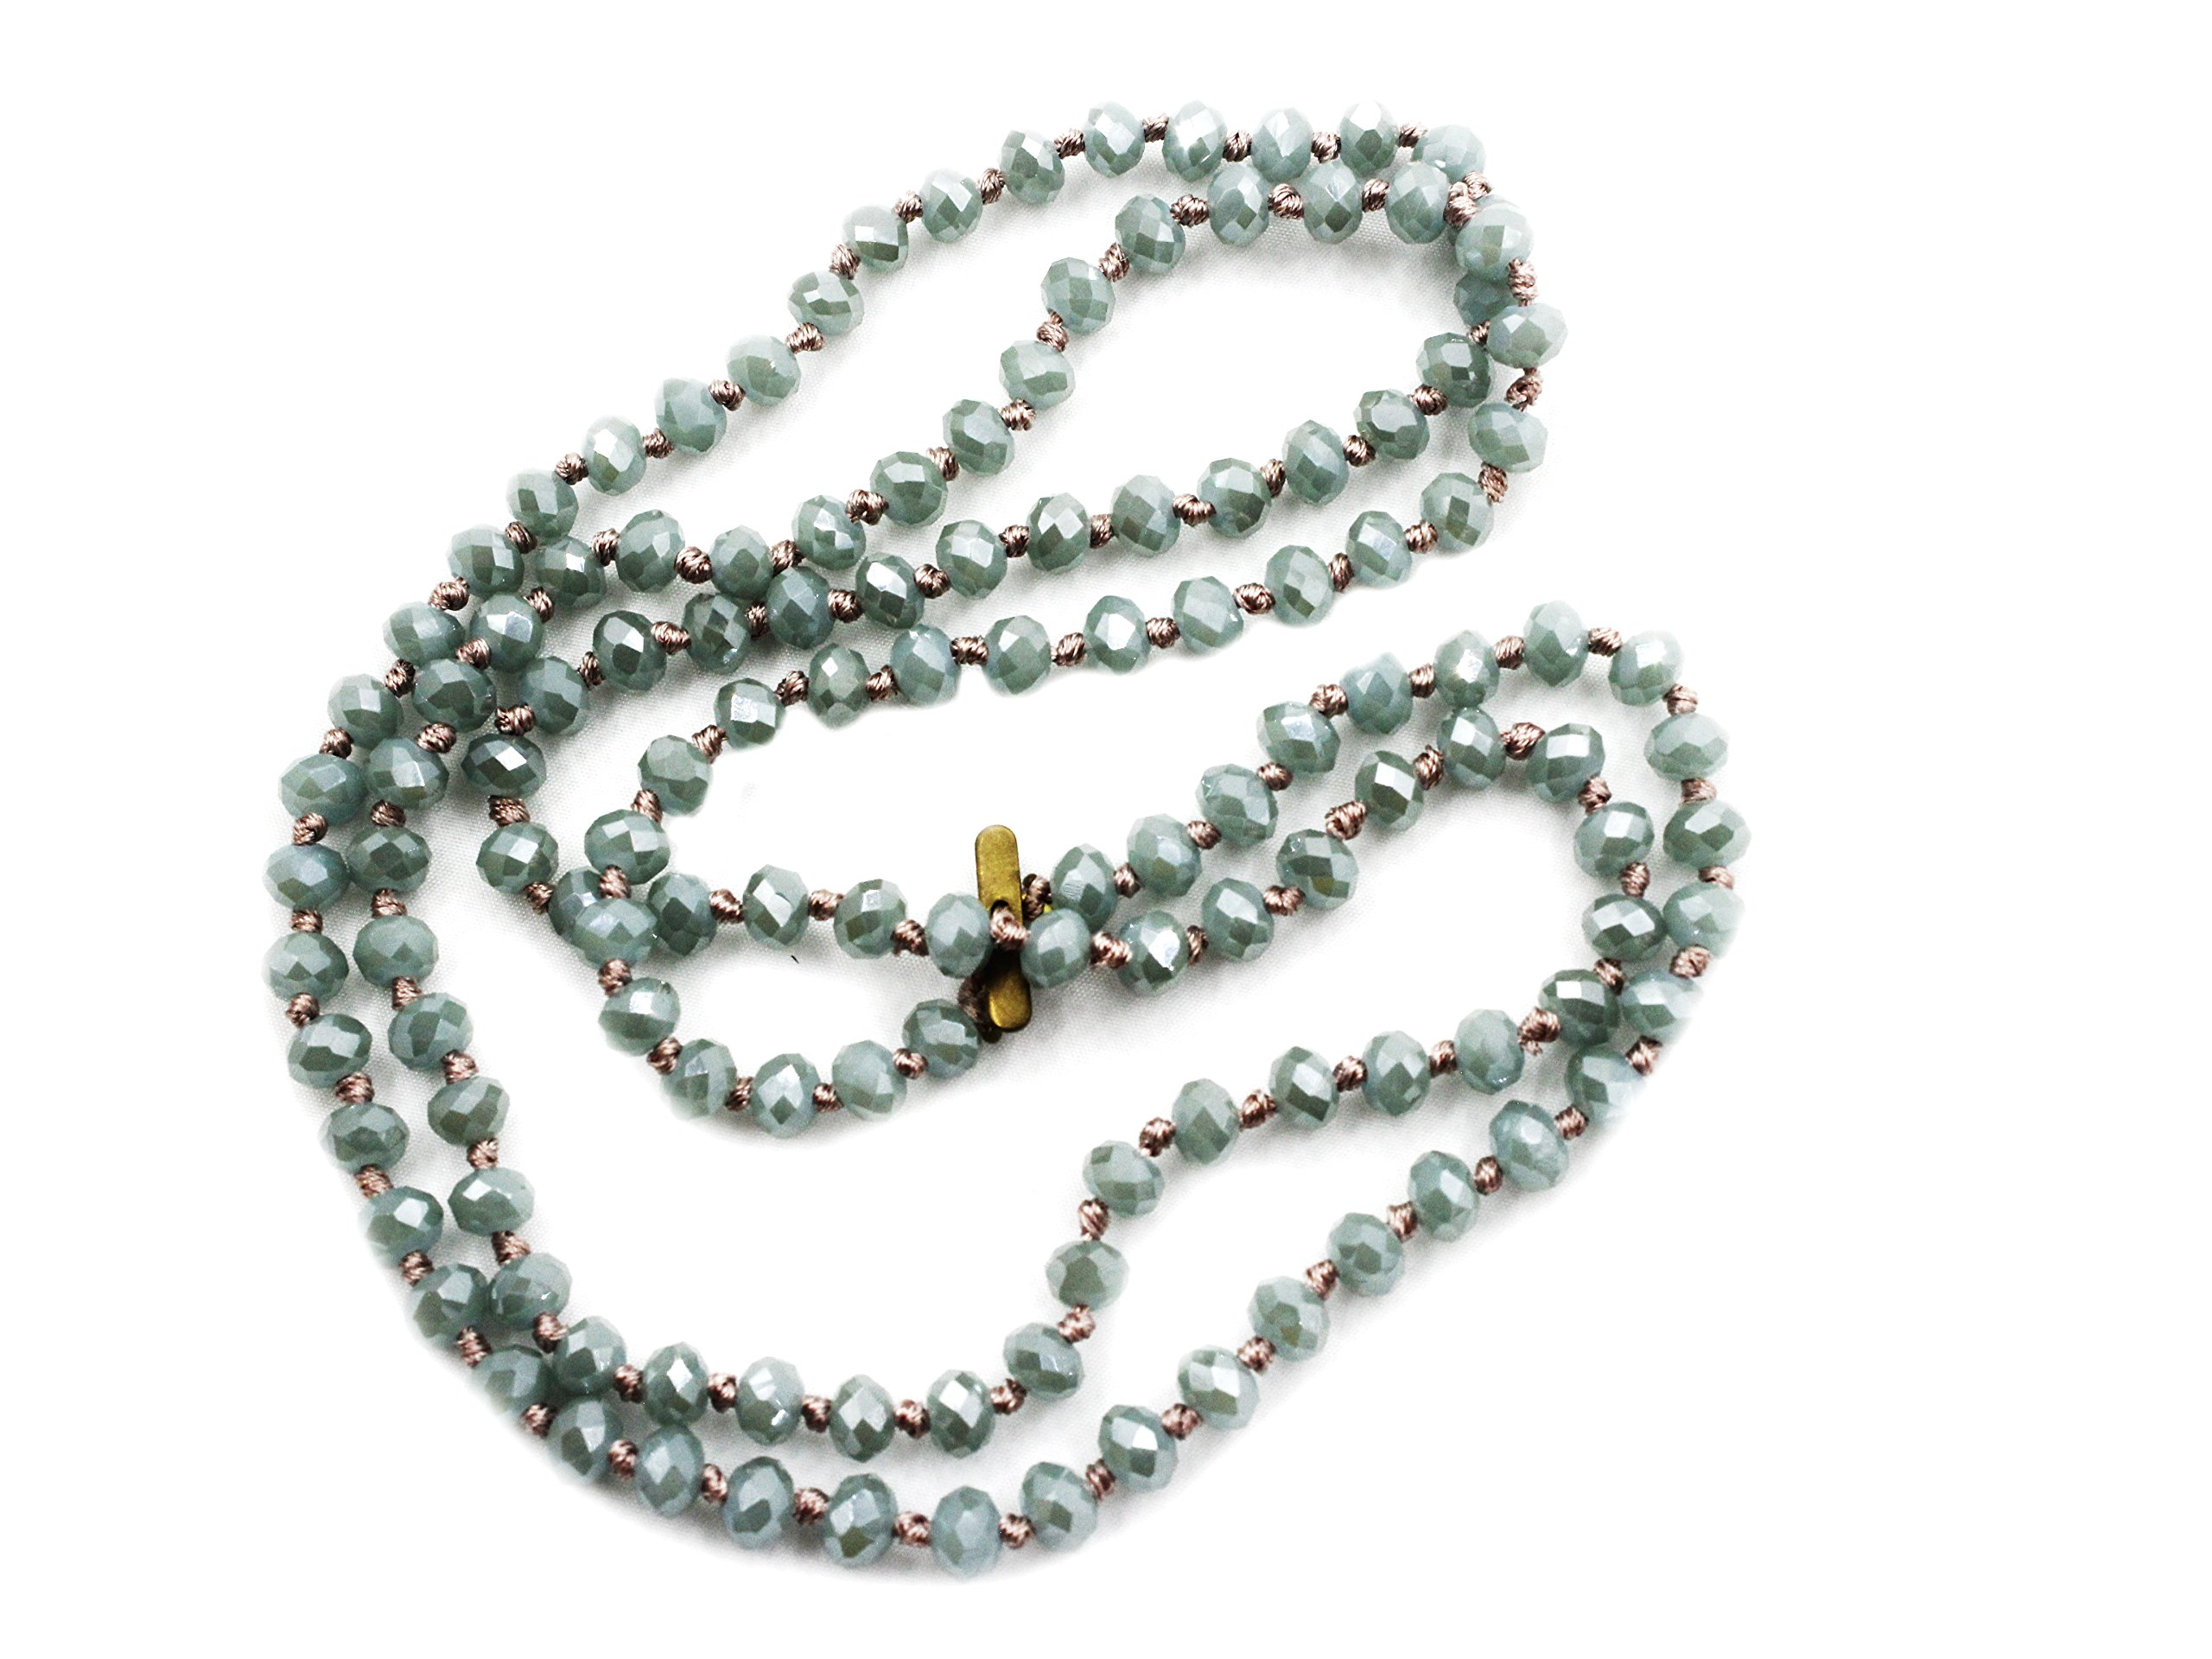 STAR BY QUEEN New Fashion Handmade Long Crystal Bead Chain Necklace Sweater Neckalce (Blue)